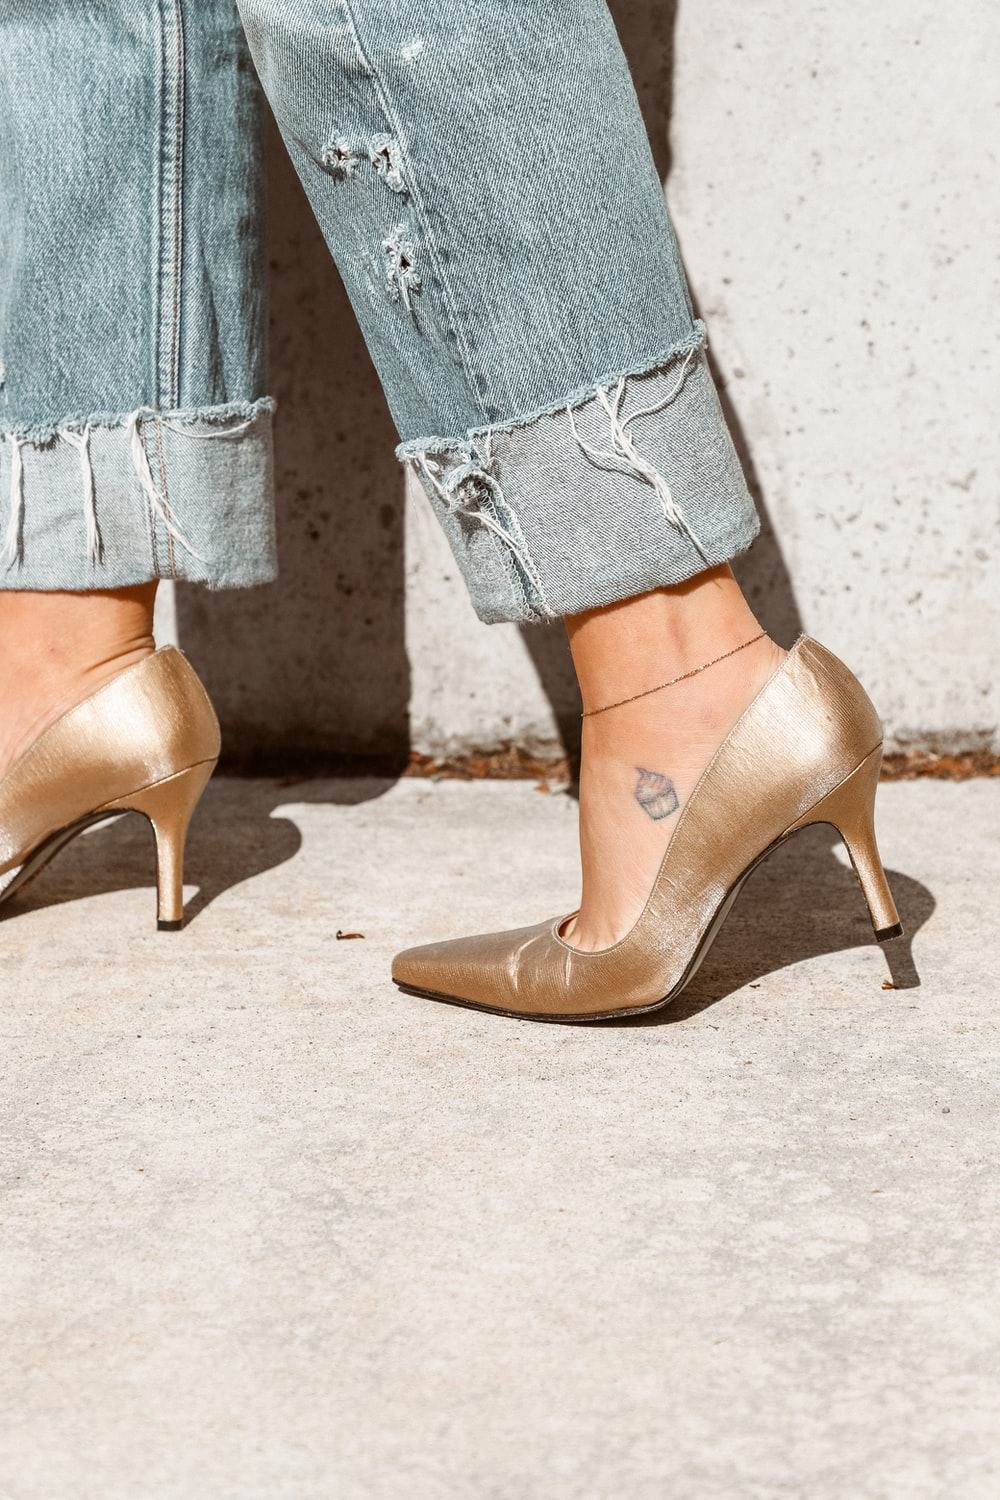 woman in gold heeled shoe with blue denim jeans